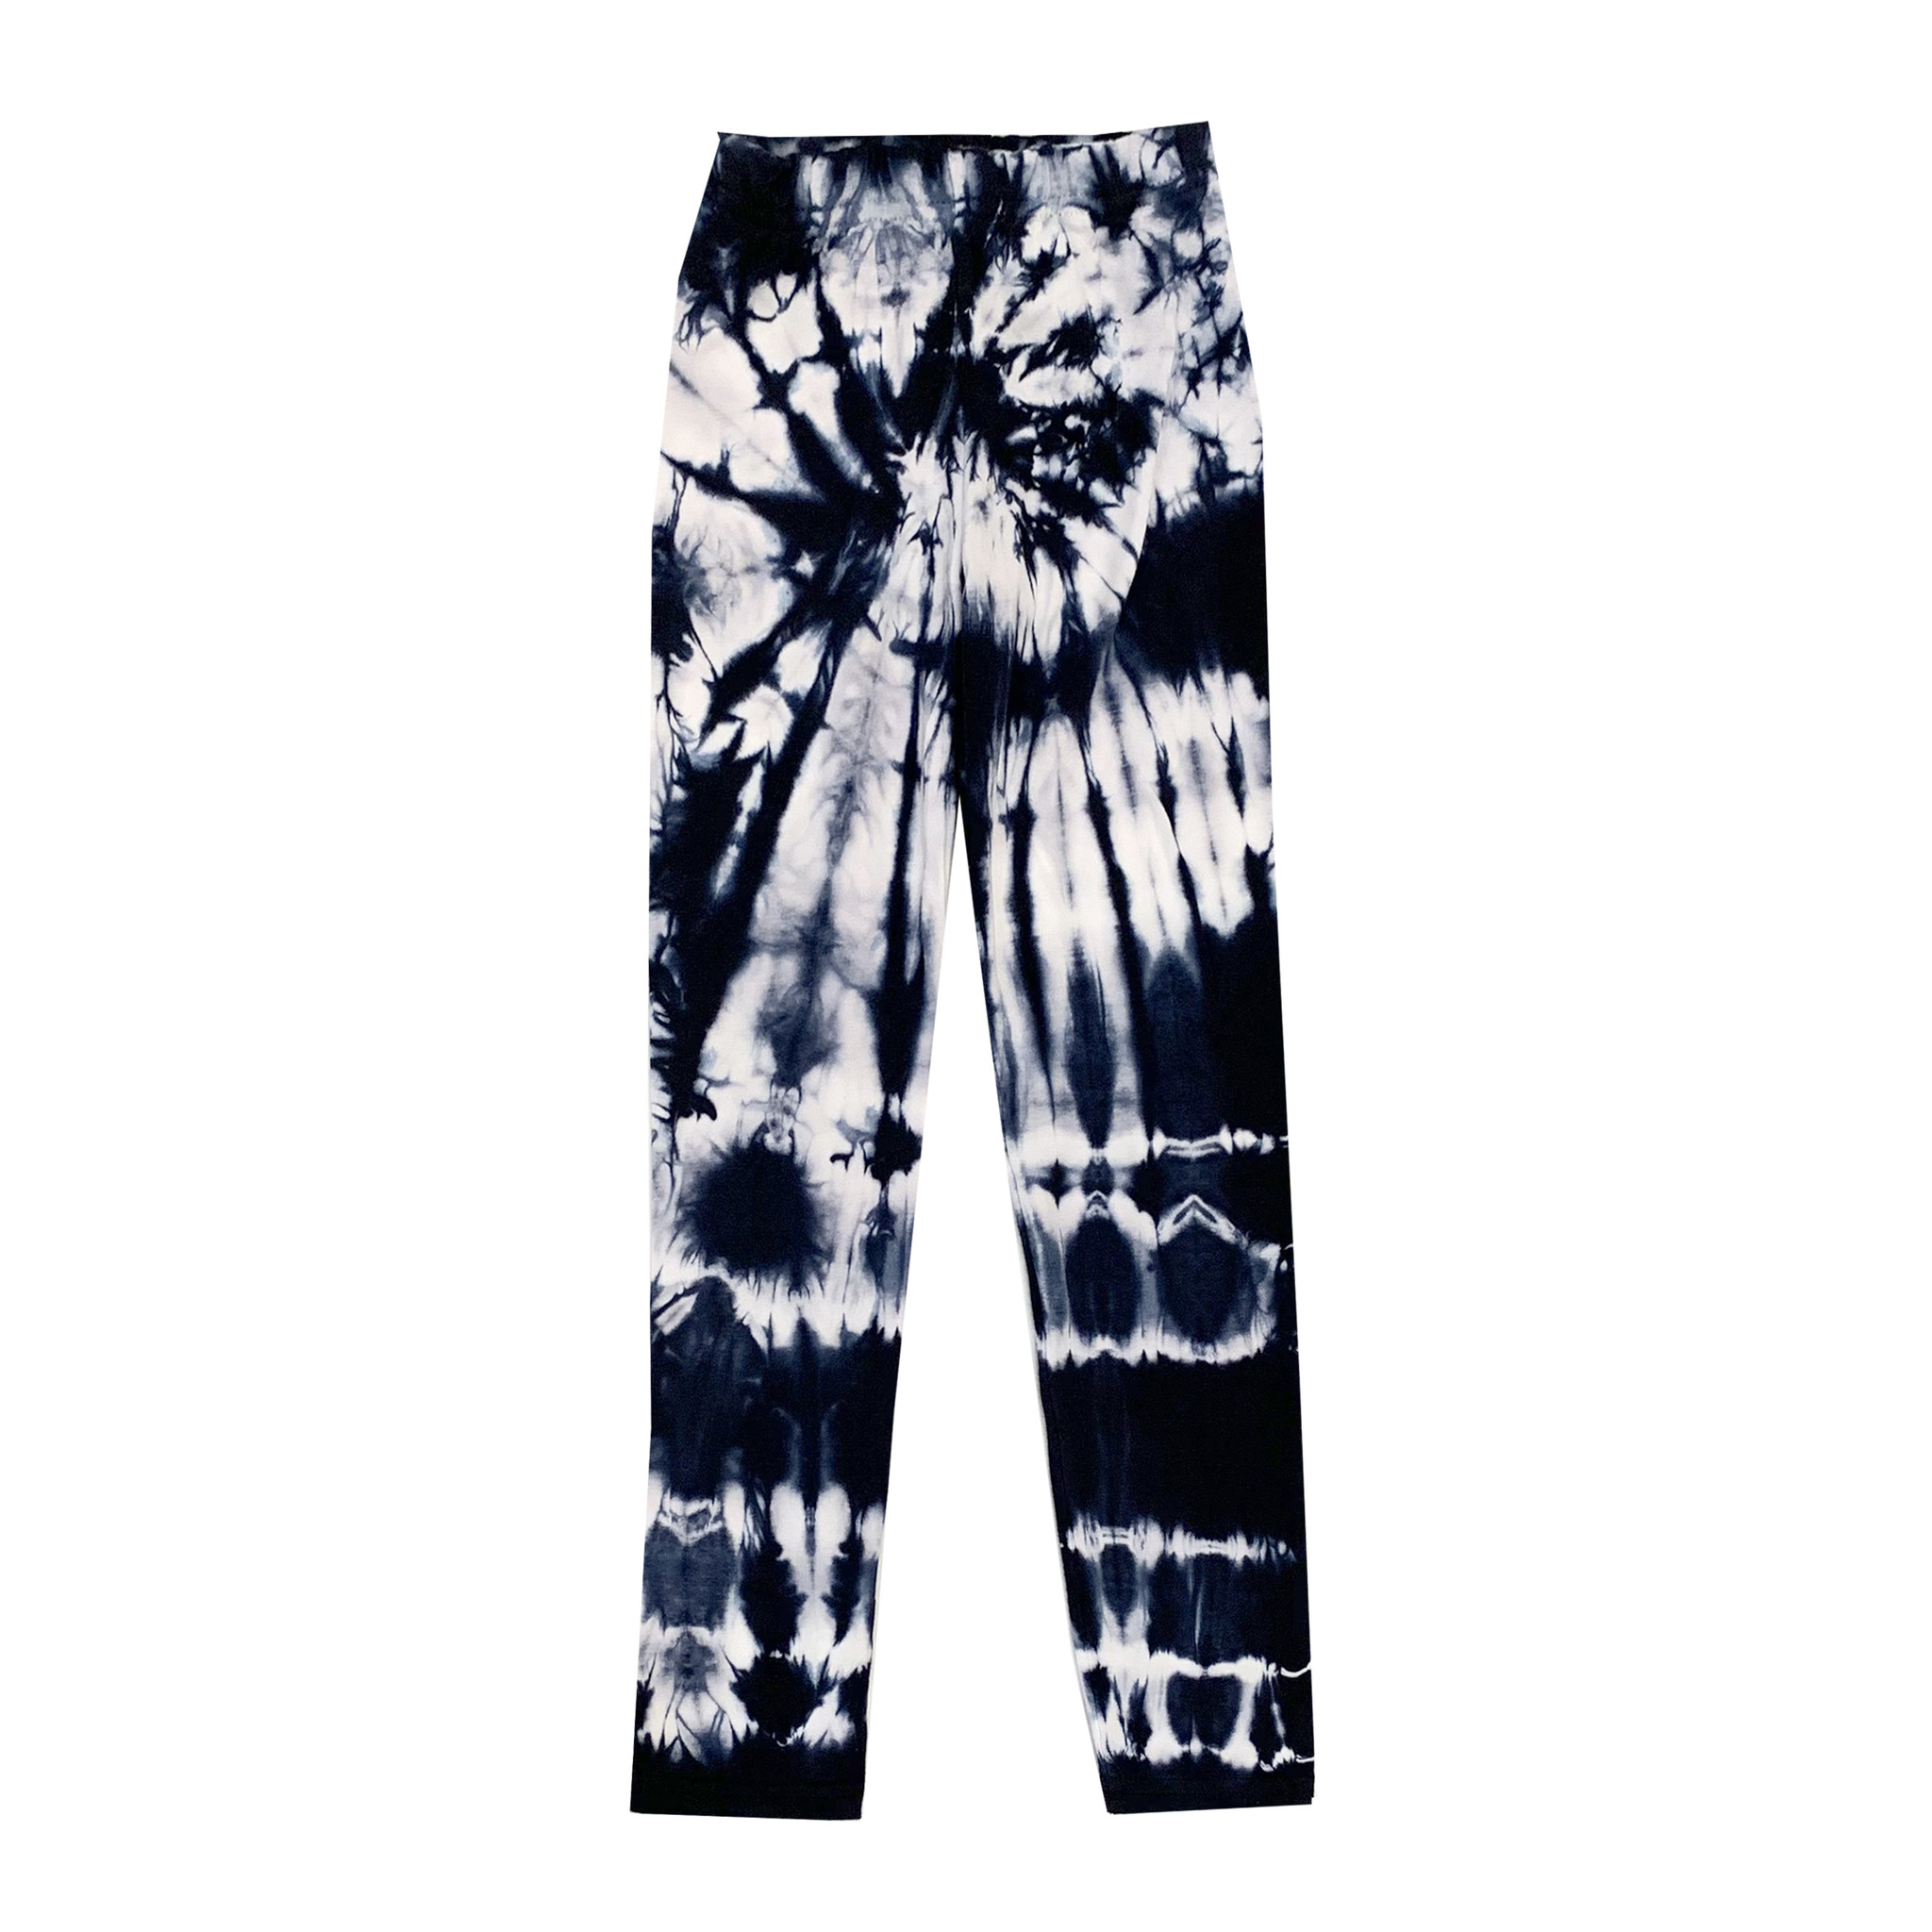 Firehouse Navy & White Tie Dye Leggings